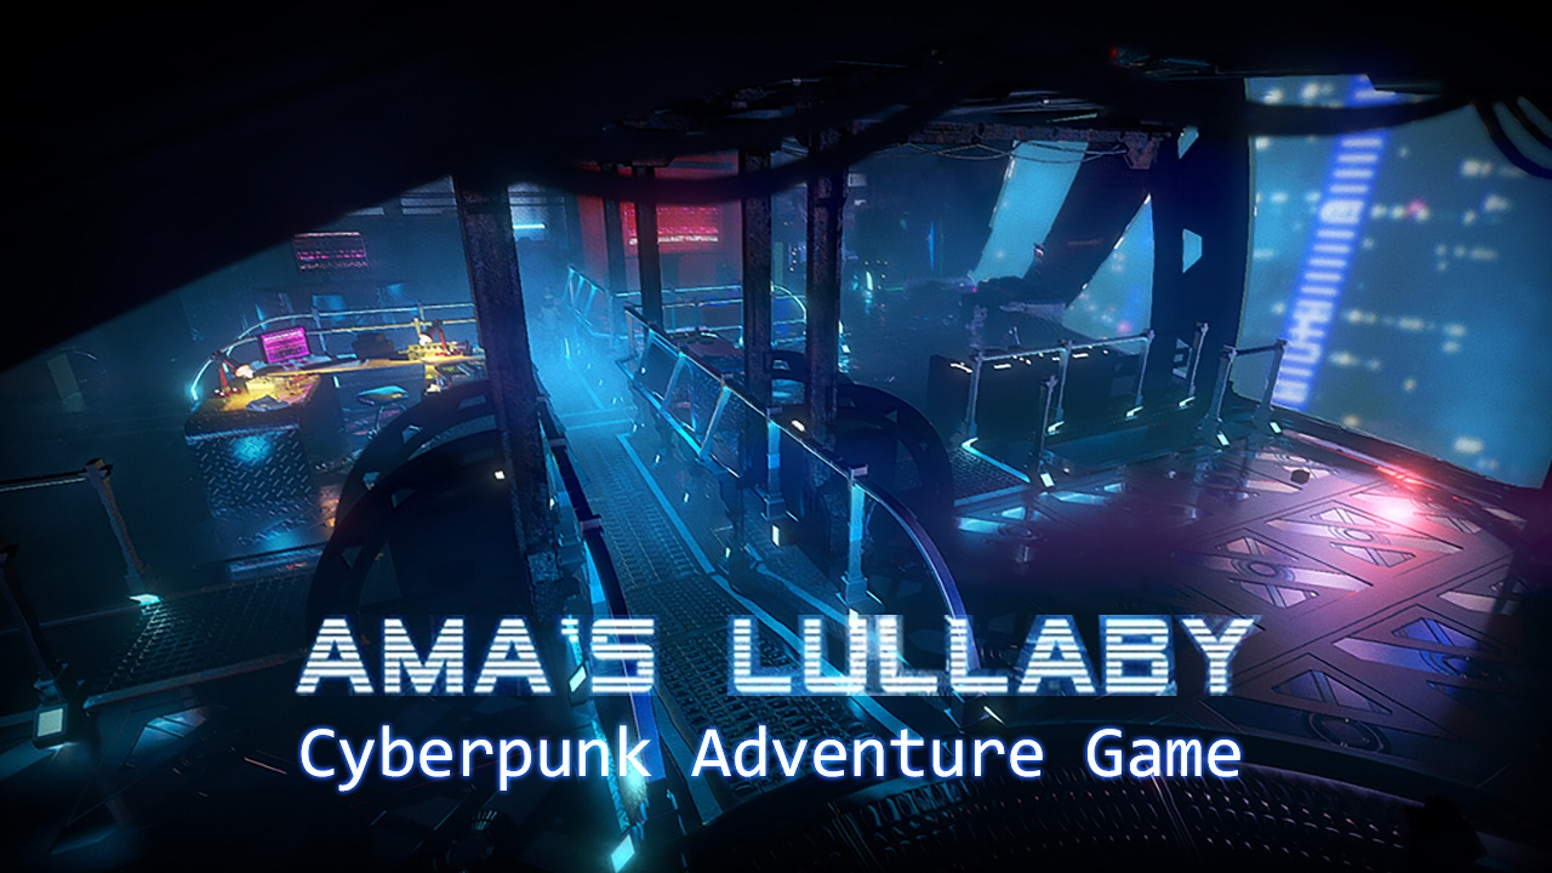 Ama's Lullaby is an adventure game in the style of Westwood's Blade Runner (1997), featuring a command-line based hacking system.